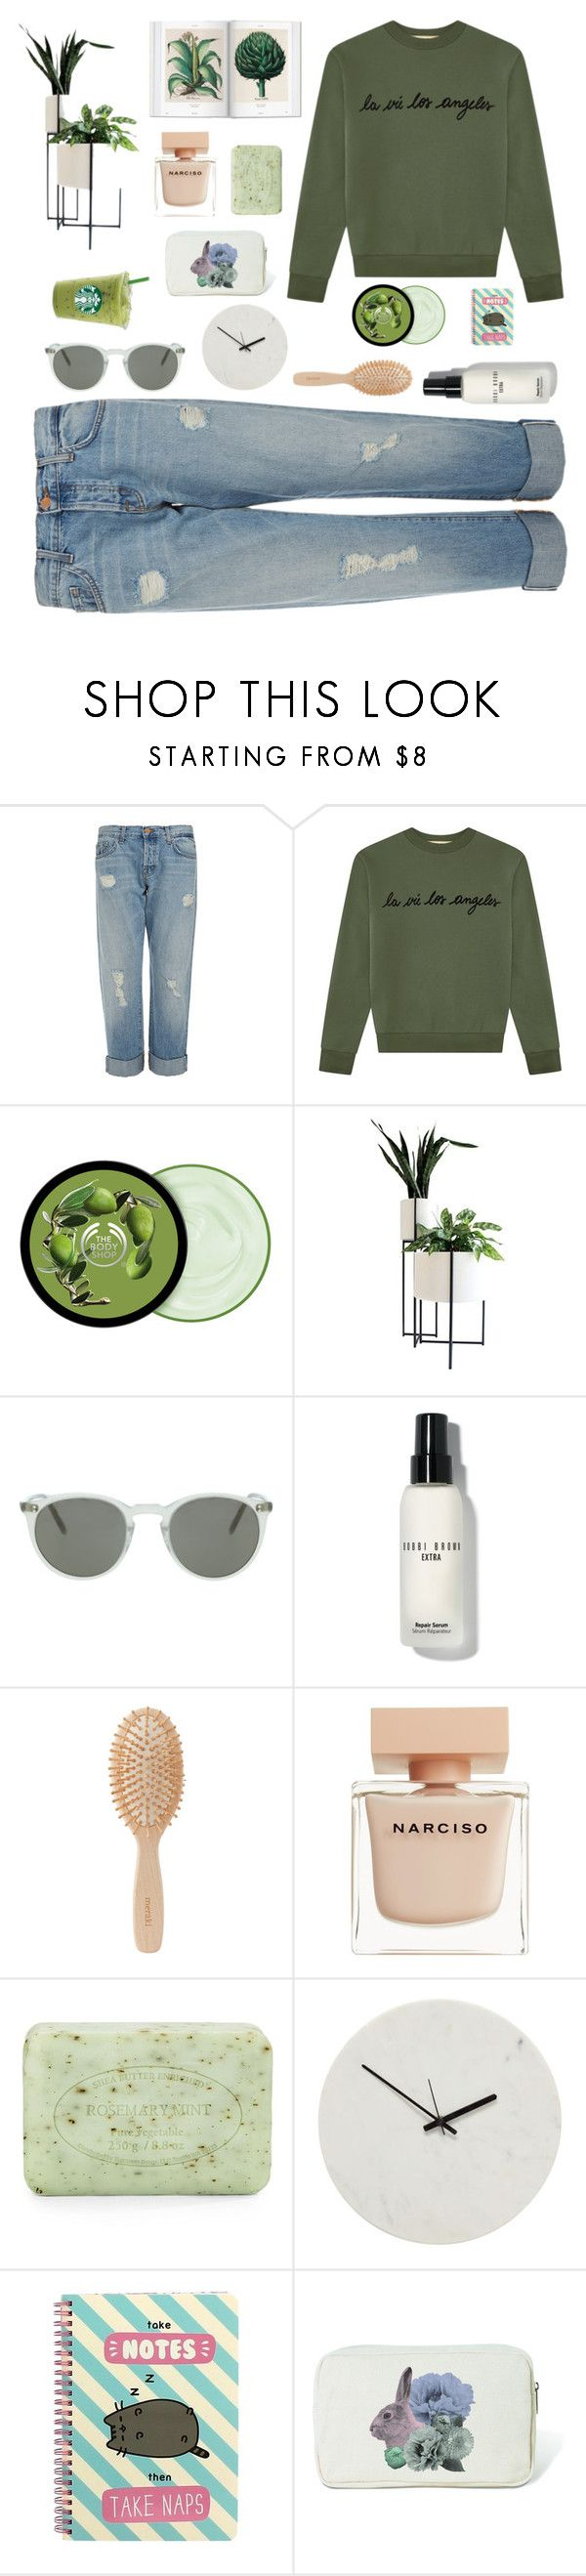 """Sin título #1468"" by solespejismo ❤ liked on Polyvore featuring J Brand, Être Cécile, The Body Shop, Oliver Peoples, Bobbi Brown Cosmetics, Meraki, Narciso Rodriguez, Pré de Provence, Holly's House and Pusheen"